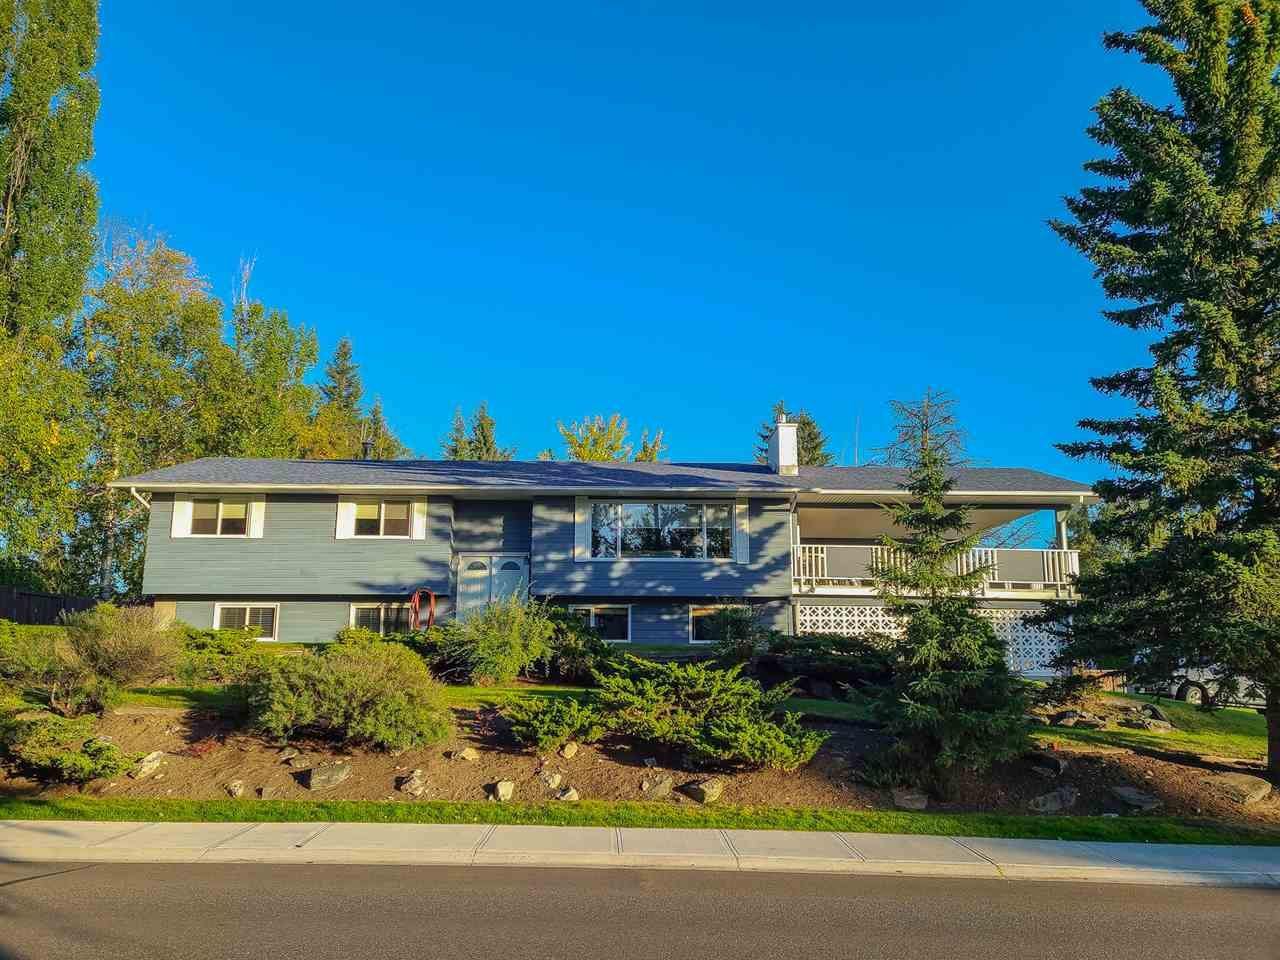 """Main Photo: 5300 YORK Drive in Prince George: Upper College House for sale in """"UPPER COLLEGE HEIGHTS"""" (PG City South (Zone 74))  : MLS®# R2495982"""